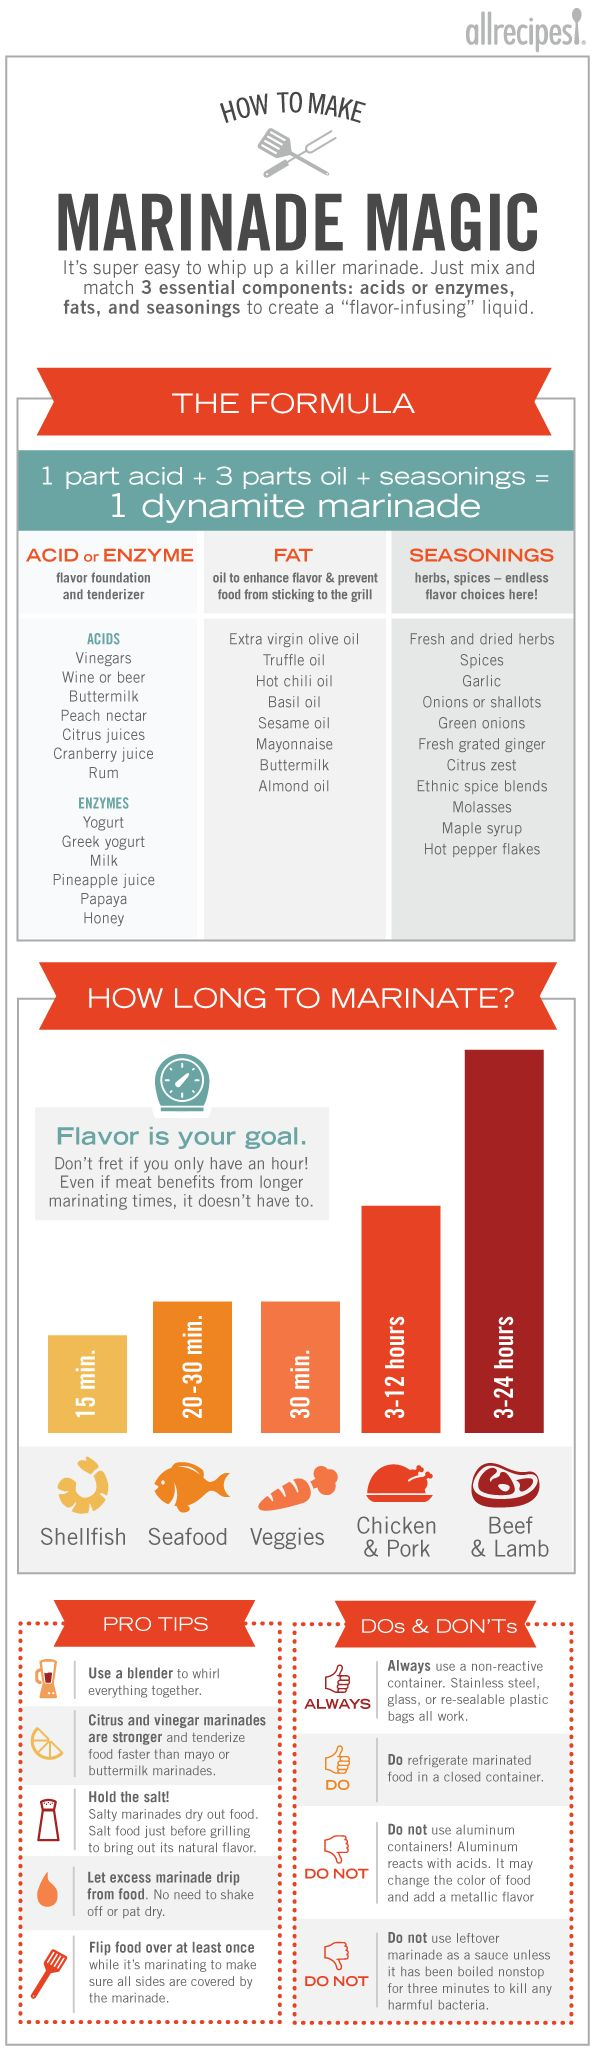 """Marinade Magic: Easy As 1-2-3 